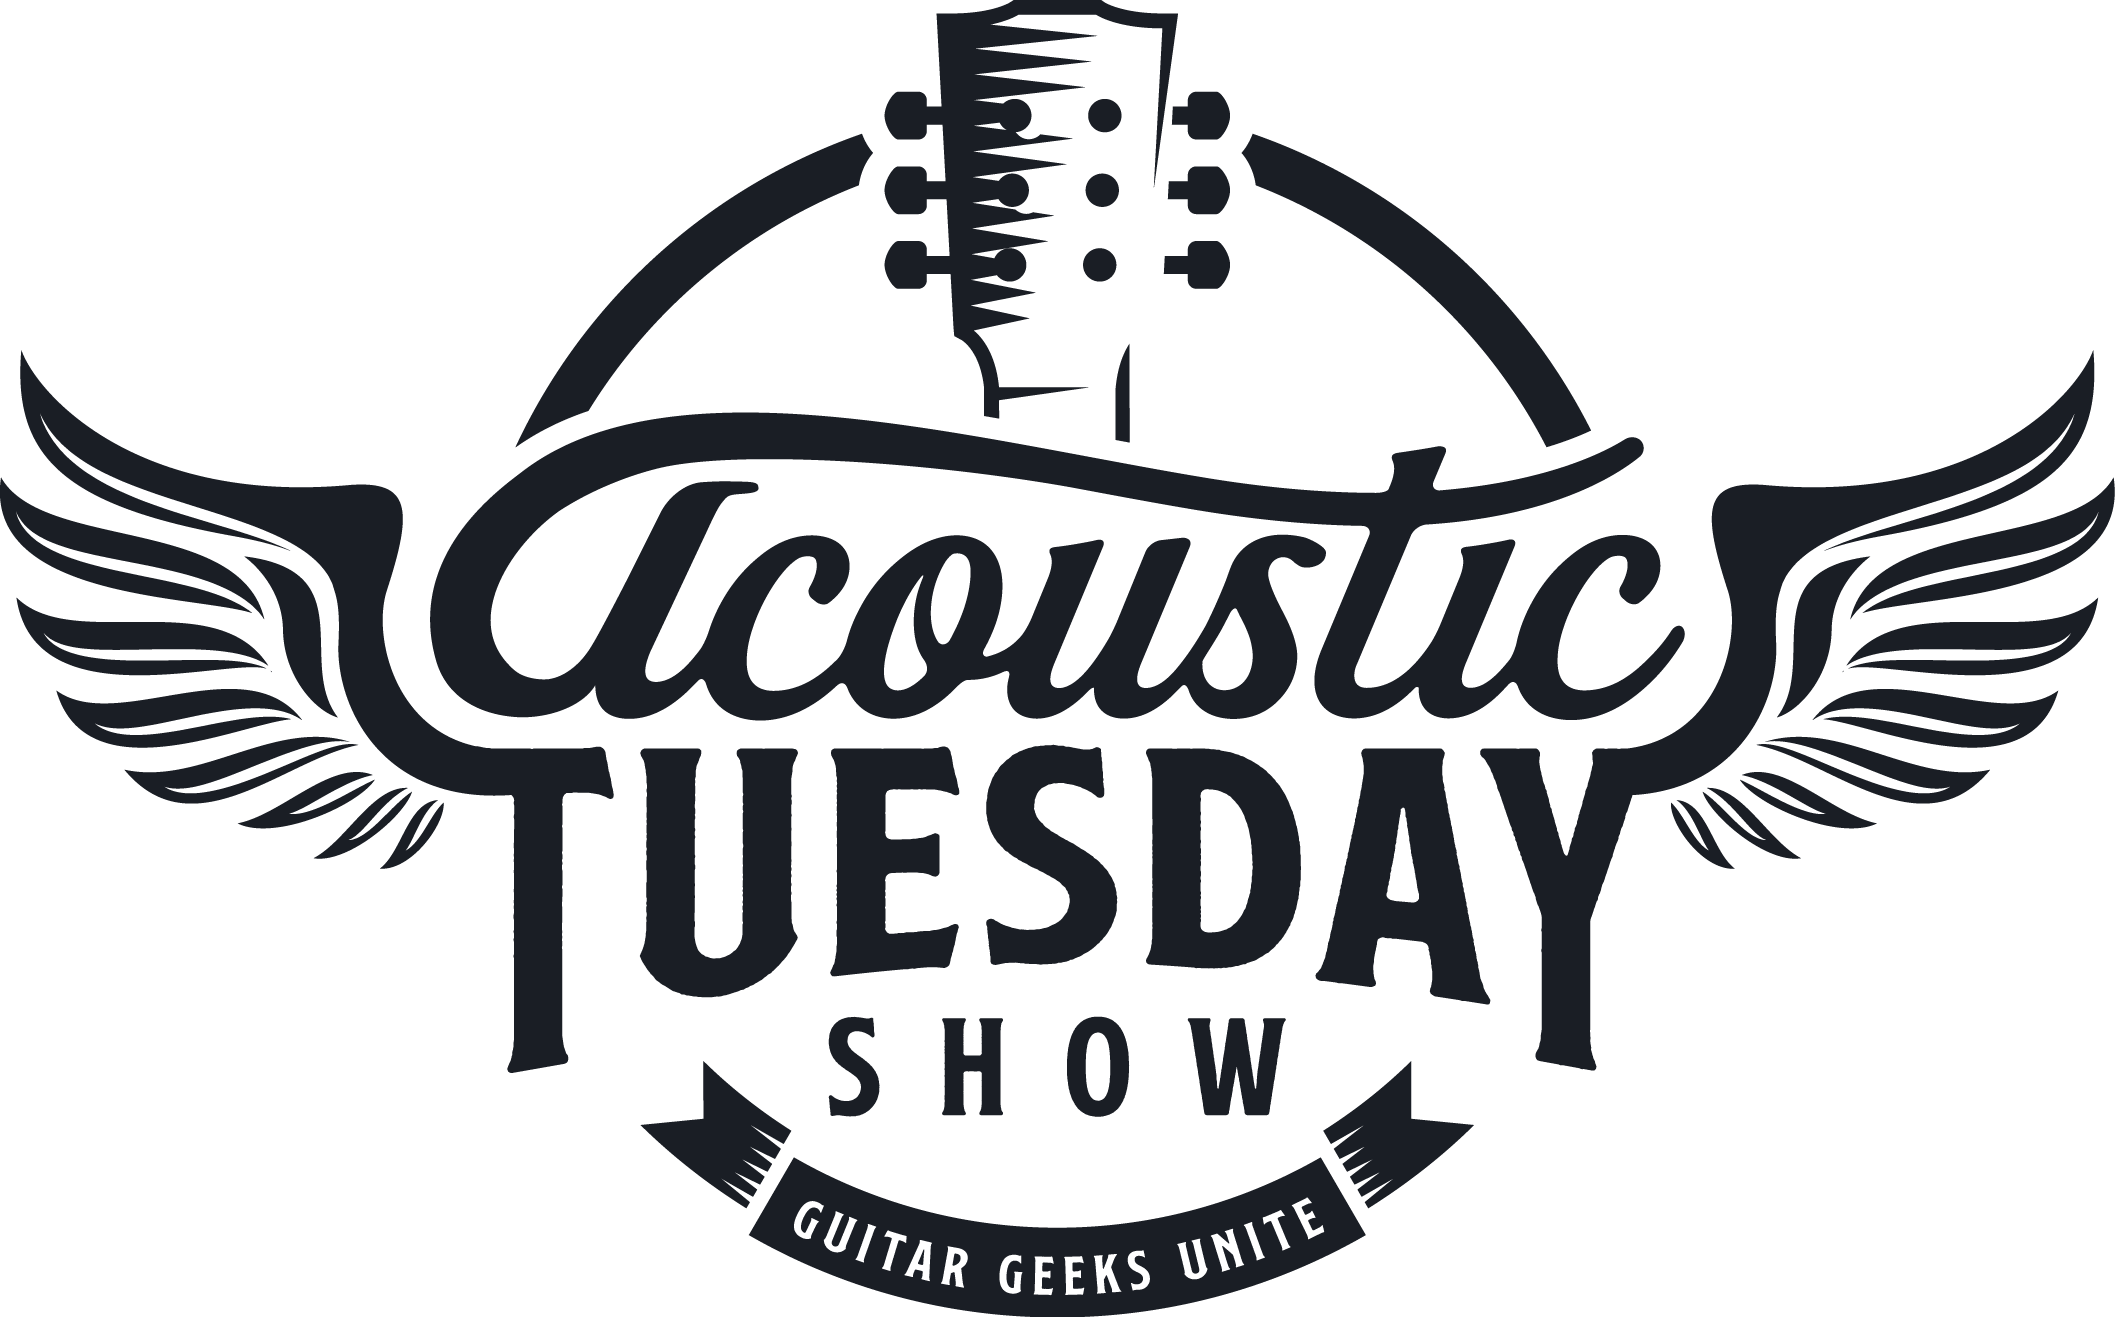 TV Show Logo for Acoustic Guitar Geeks